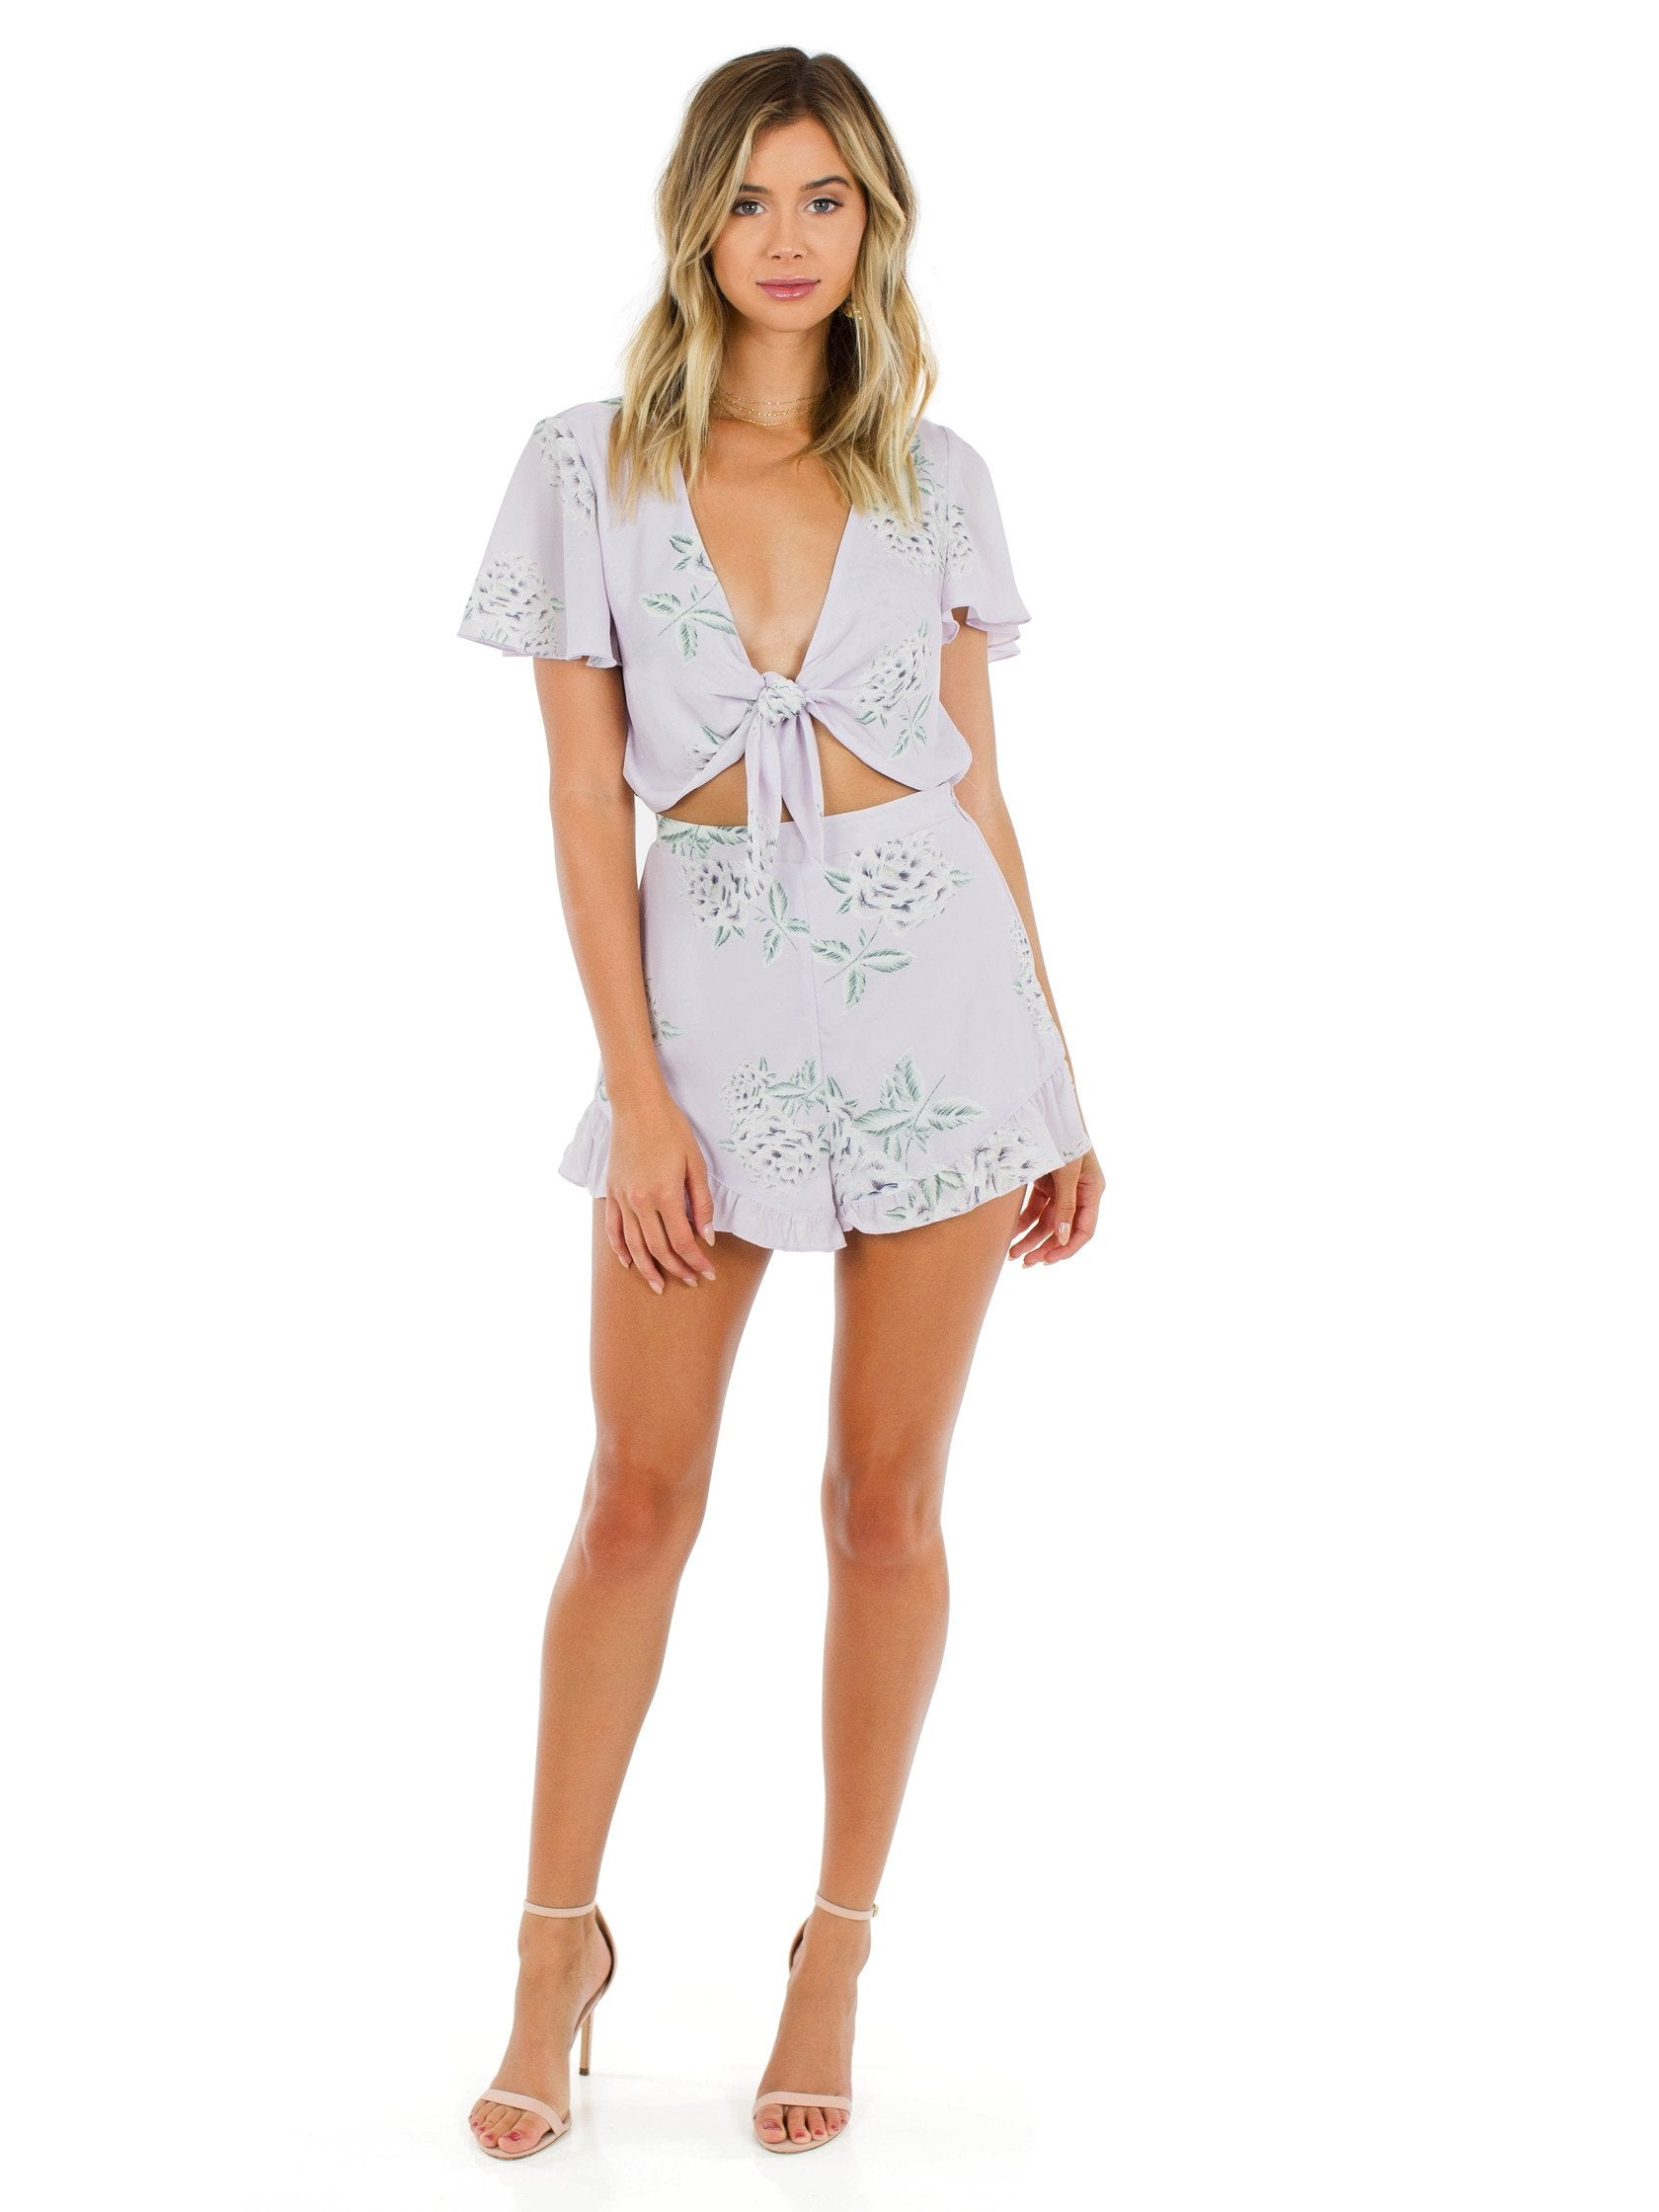 Woman wearing a romper rental from Show Me Your Mumu called Riviera Romper